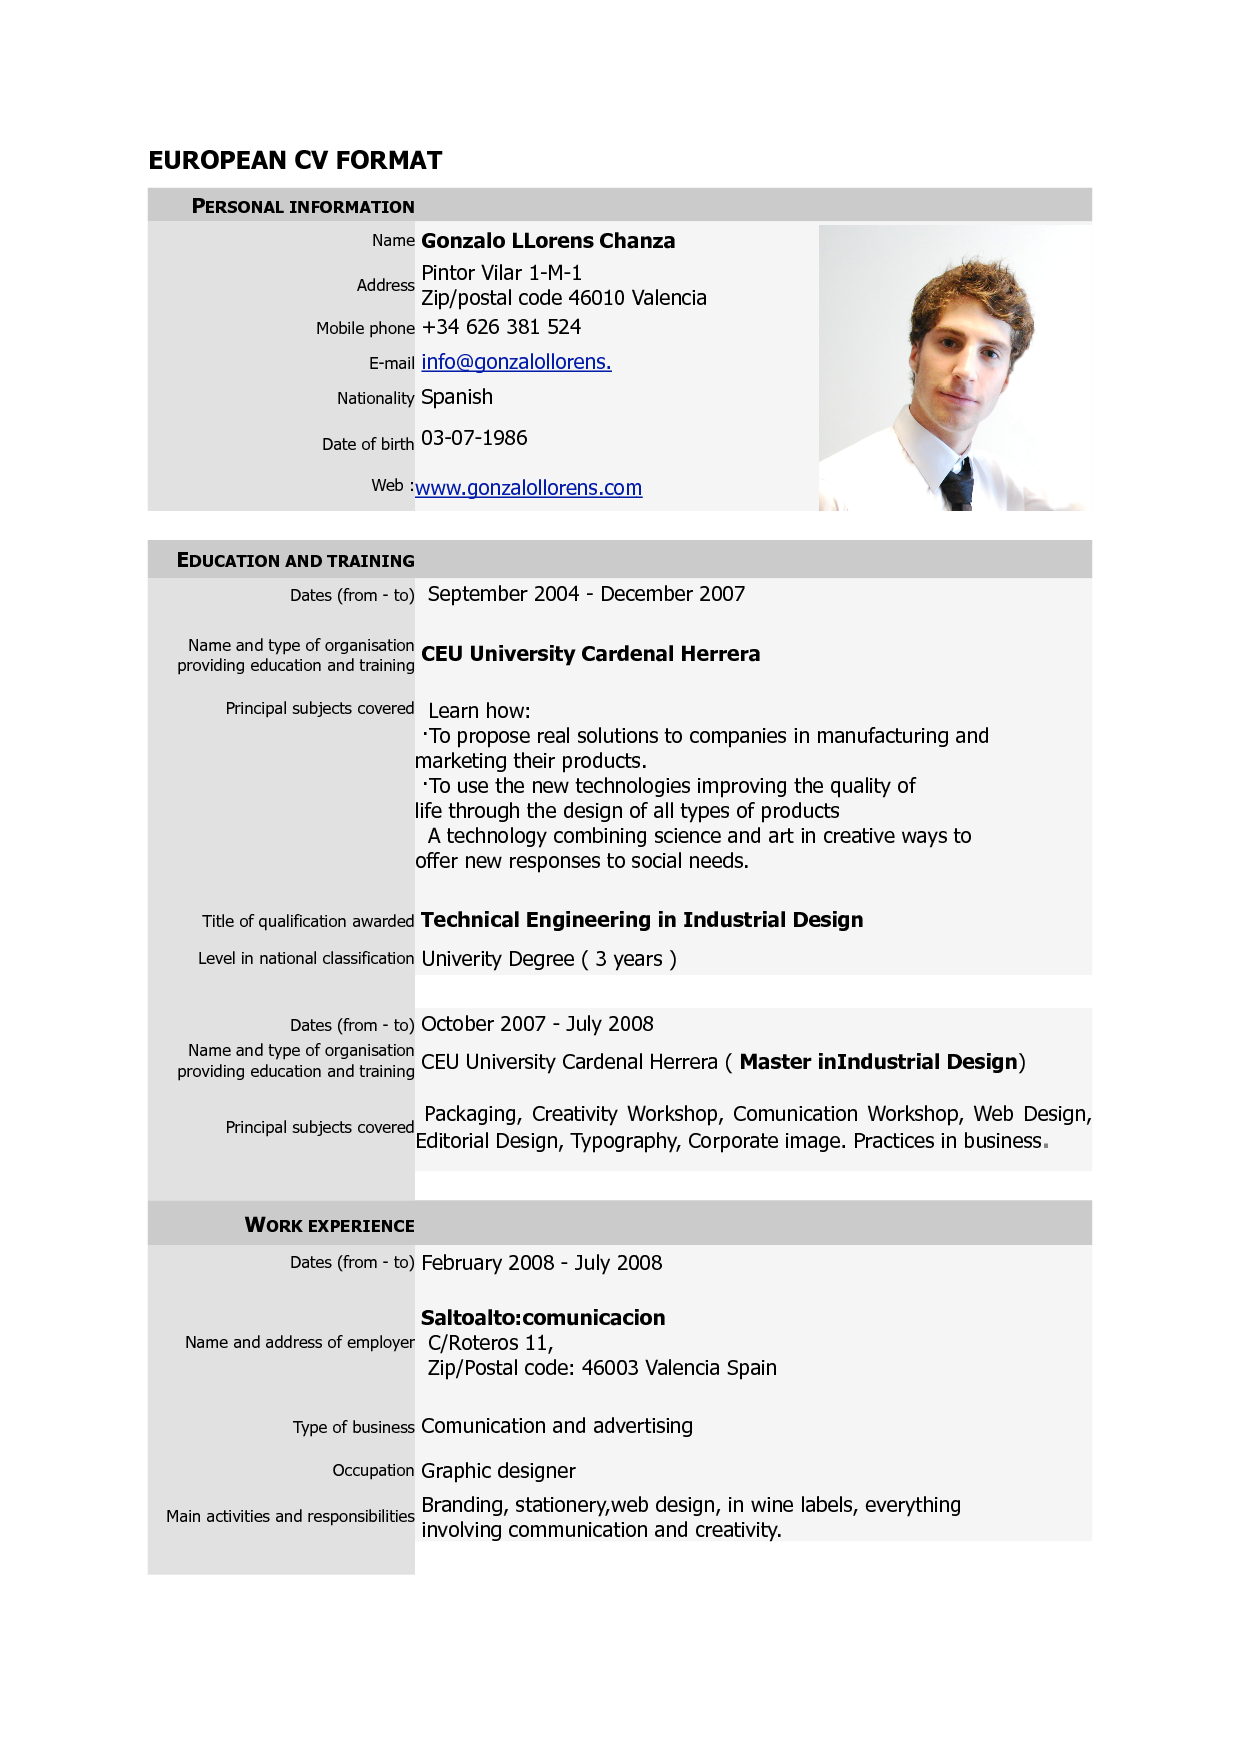 Resume Templates Tamu New Free Download Cv Europass Pdf Europass Home European Cv Format Pdf